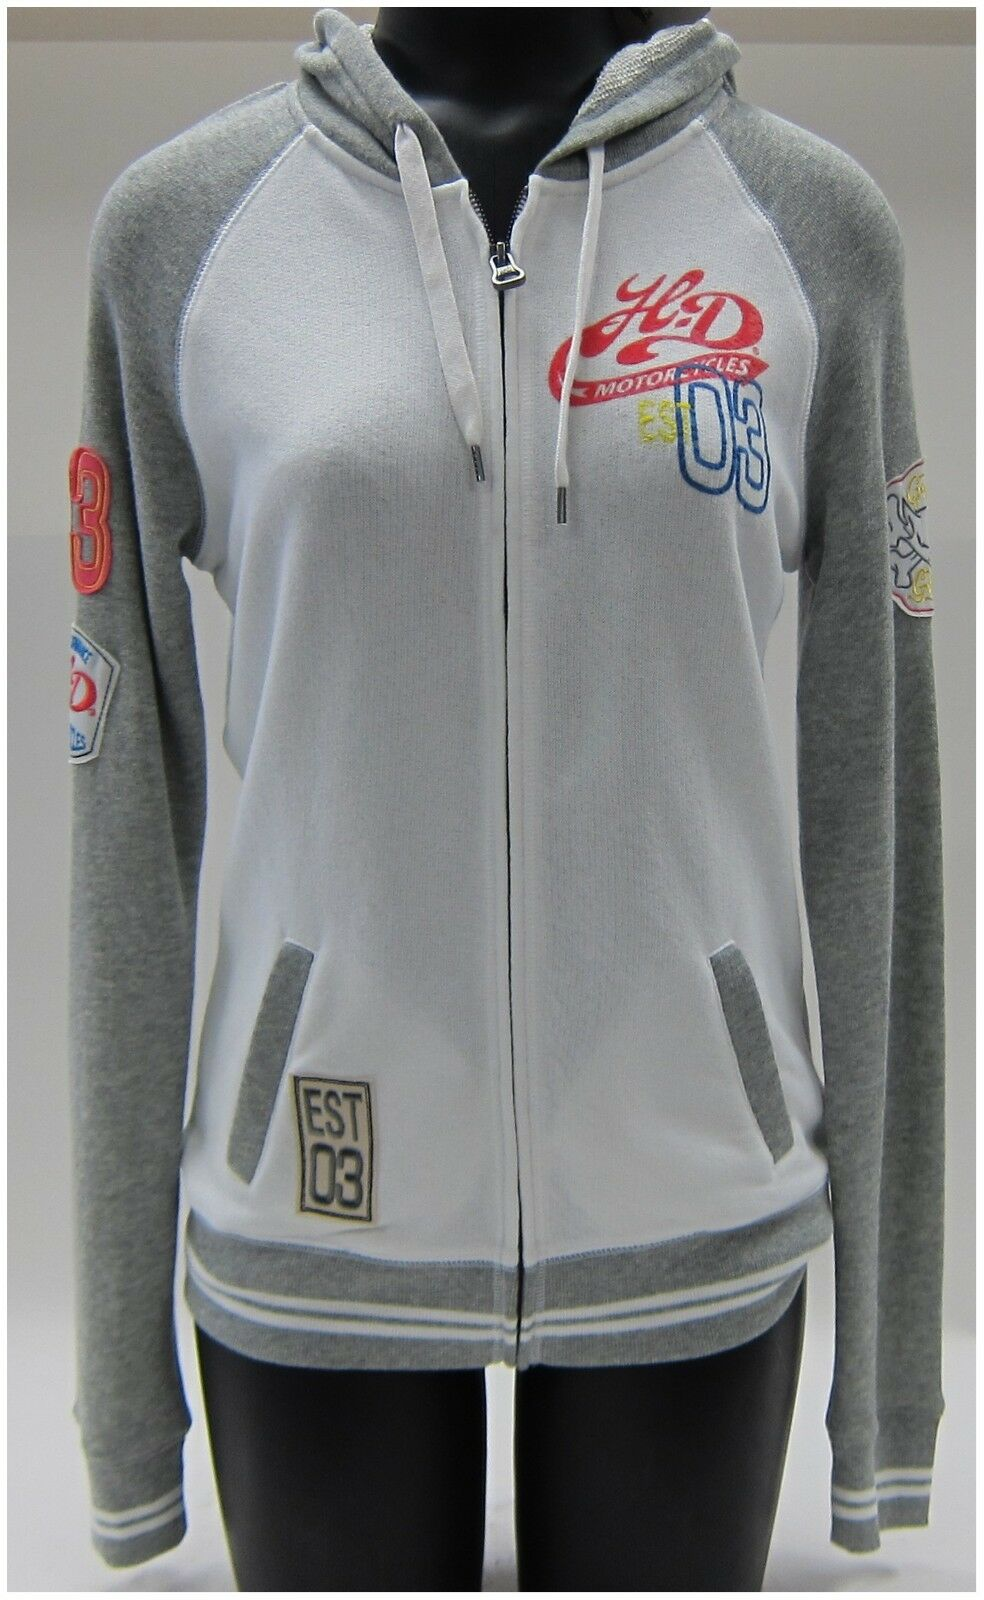 Harley Harley Harley Davidson Ladies Hoodie Size S-Small Long Sleeve Zipper, Front, White-Grey 87a9c8